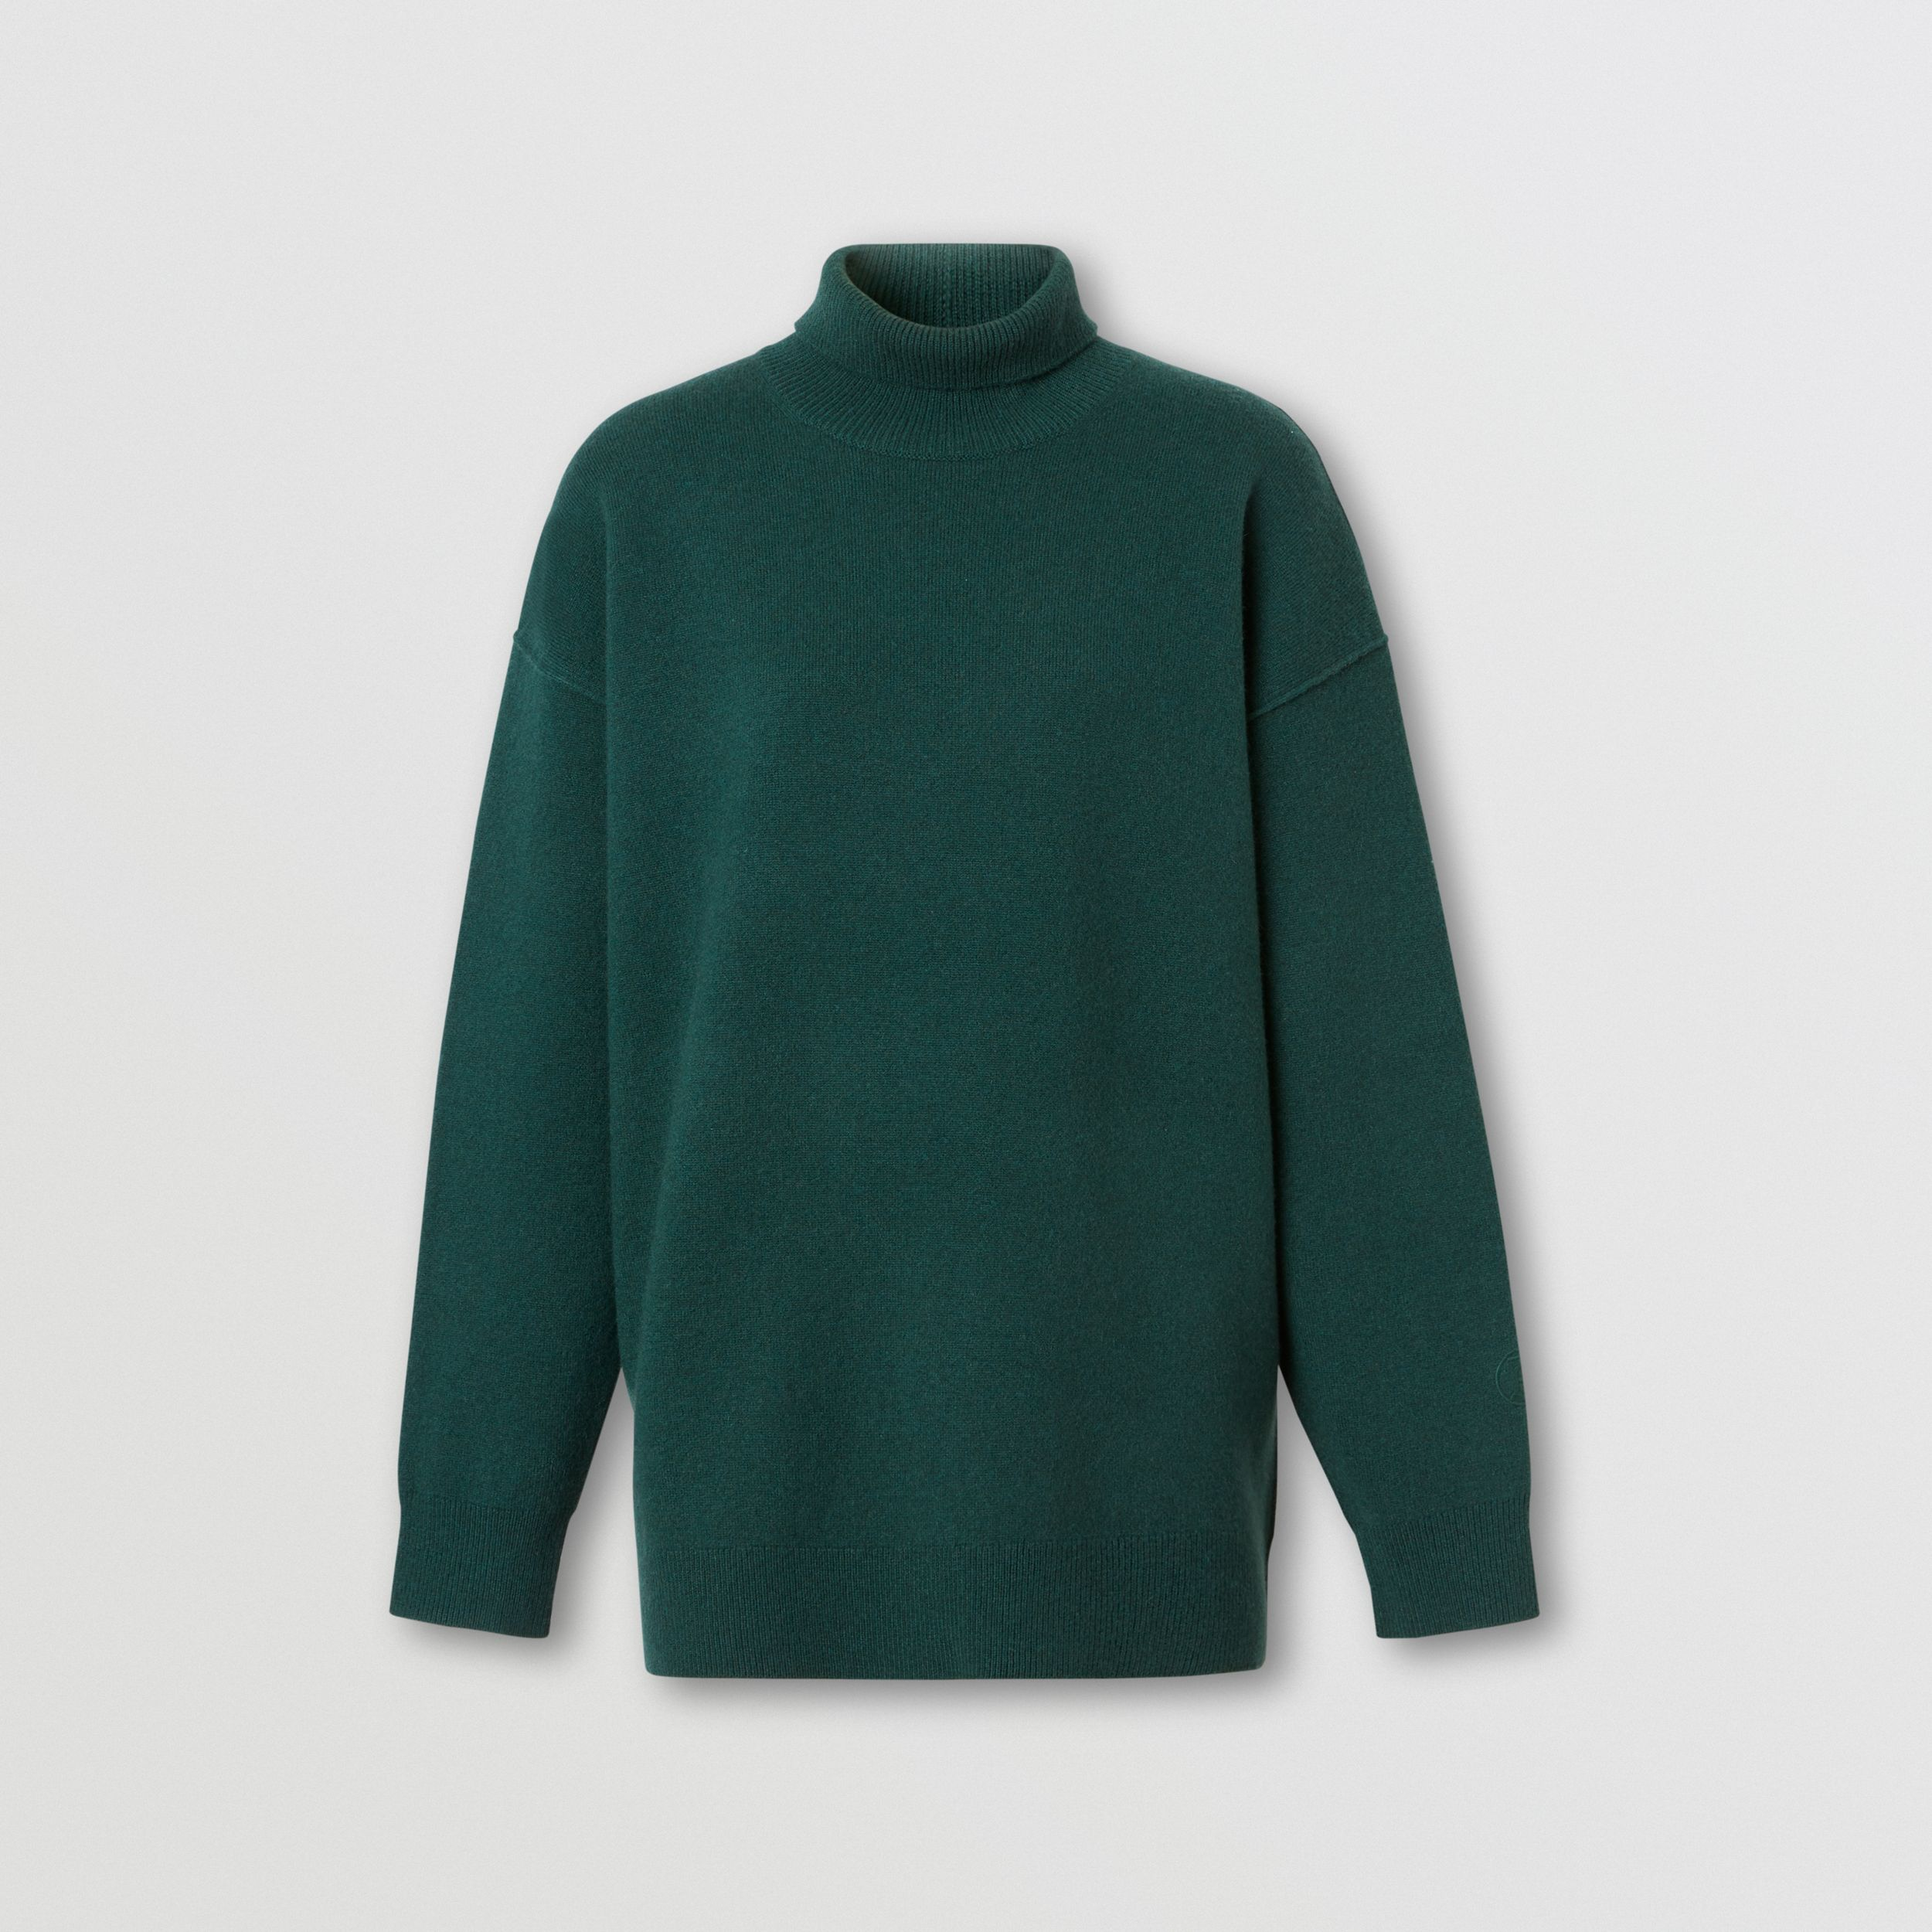 Monogram Motif Cashmere Blend Funnel Neck Sweater in Bottle Green - Women | Burberry Hong Kong S.A.R. - 4